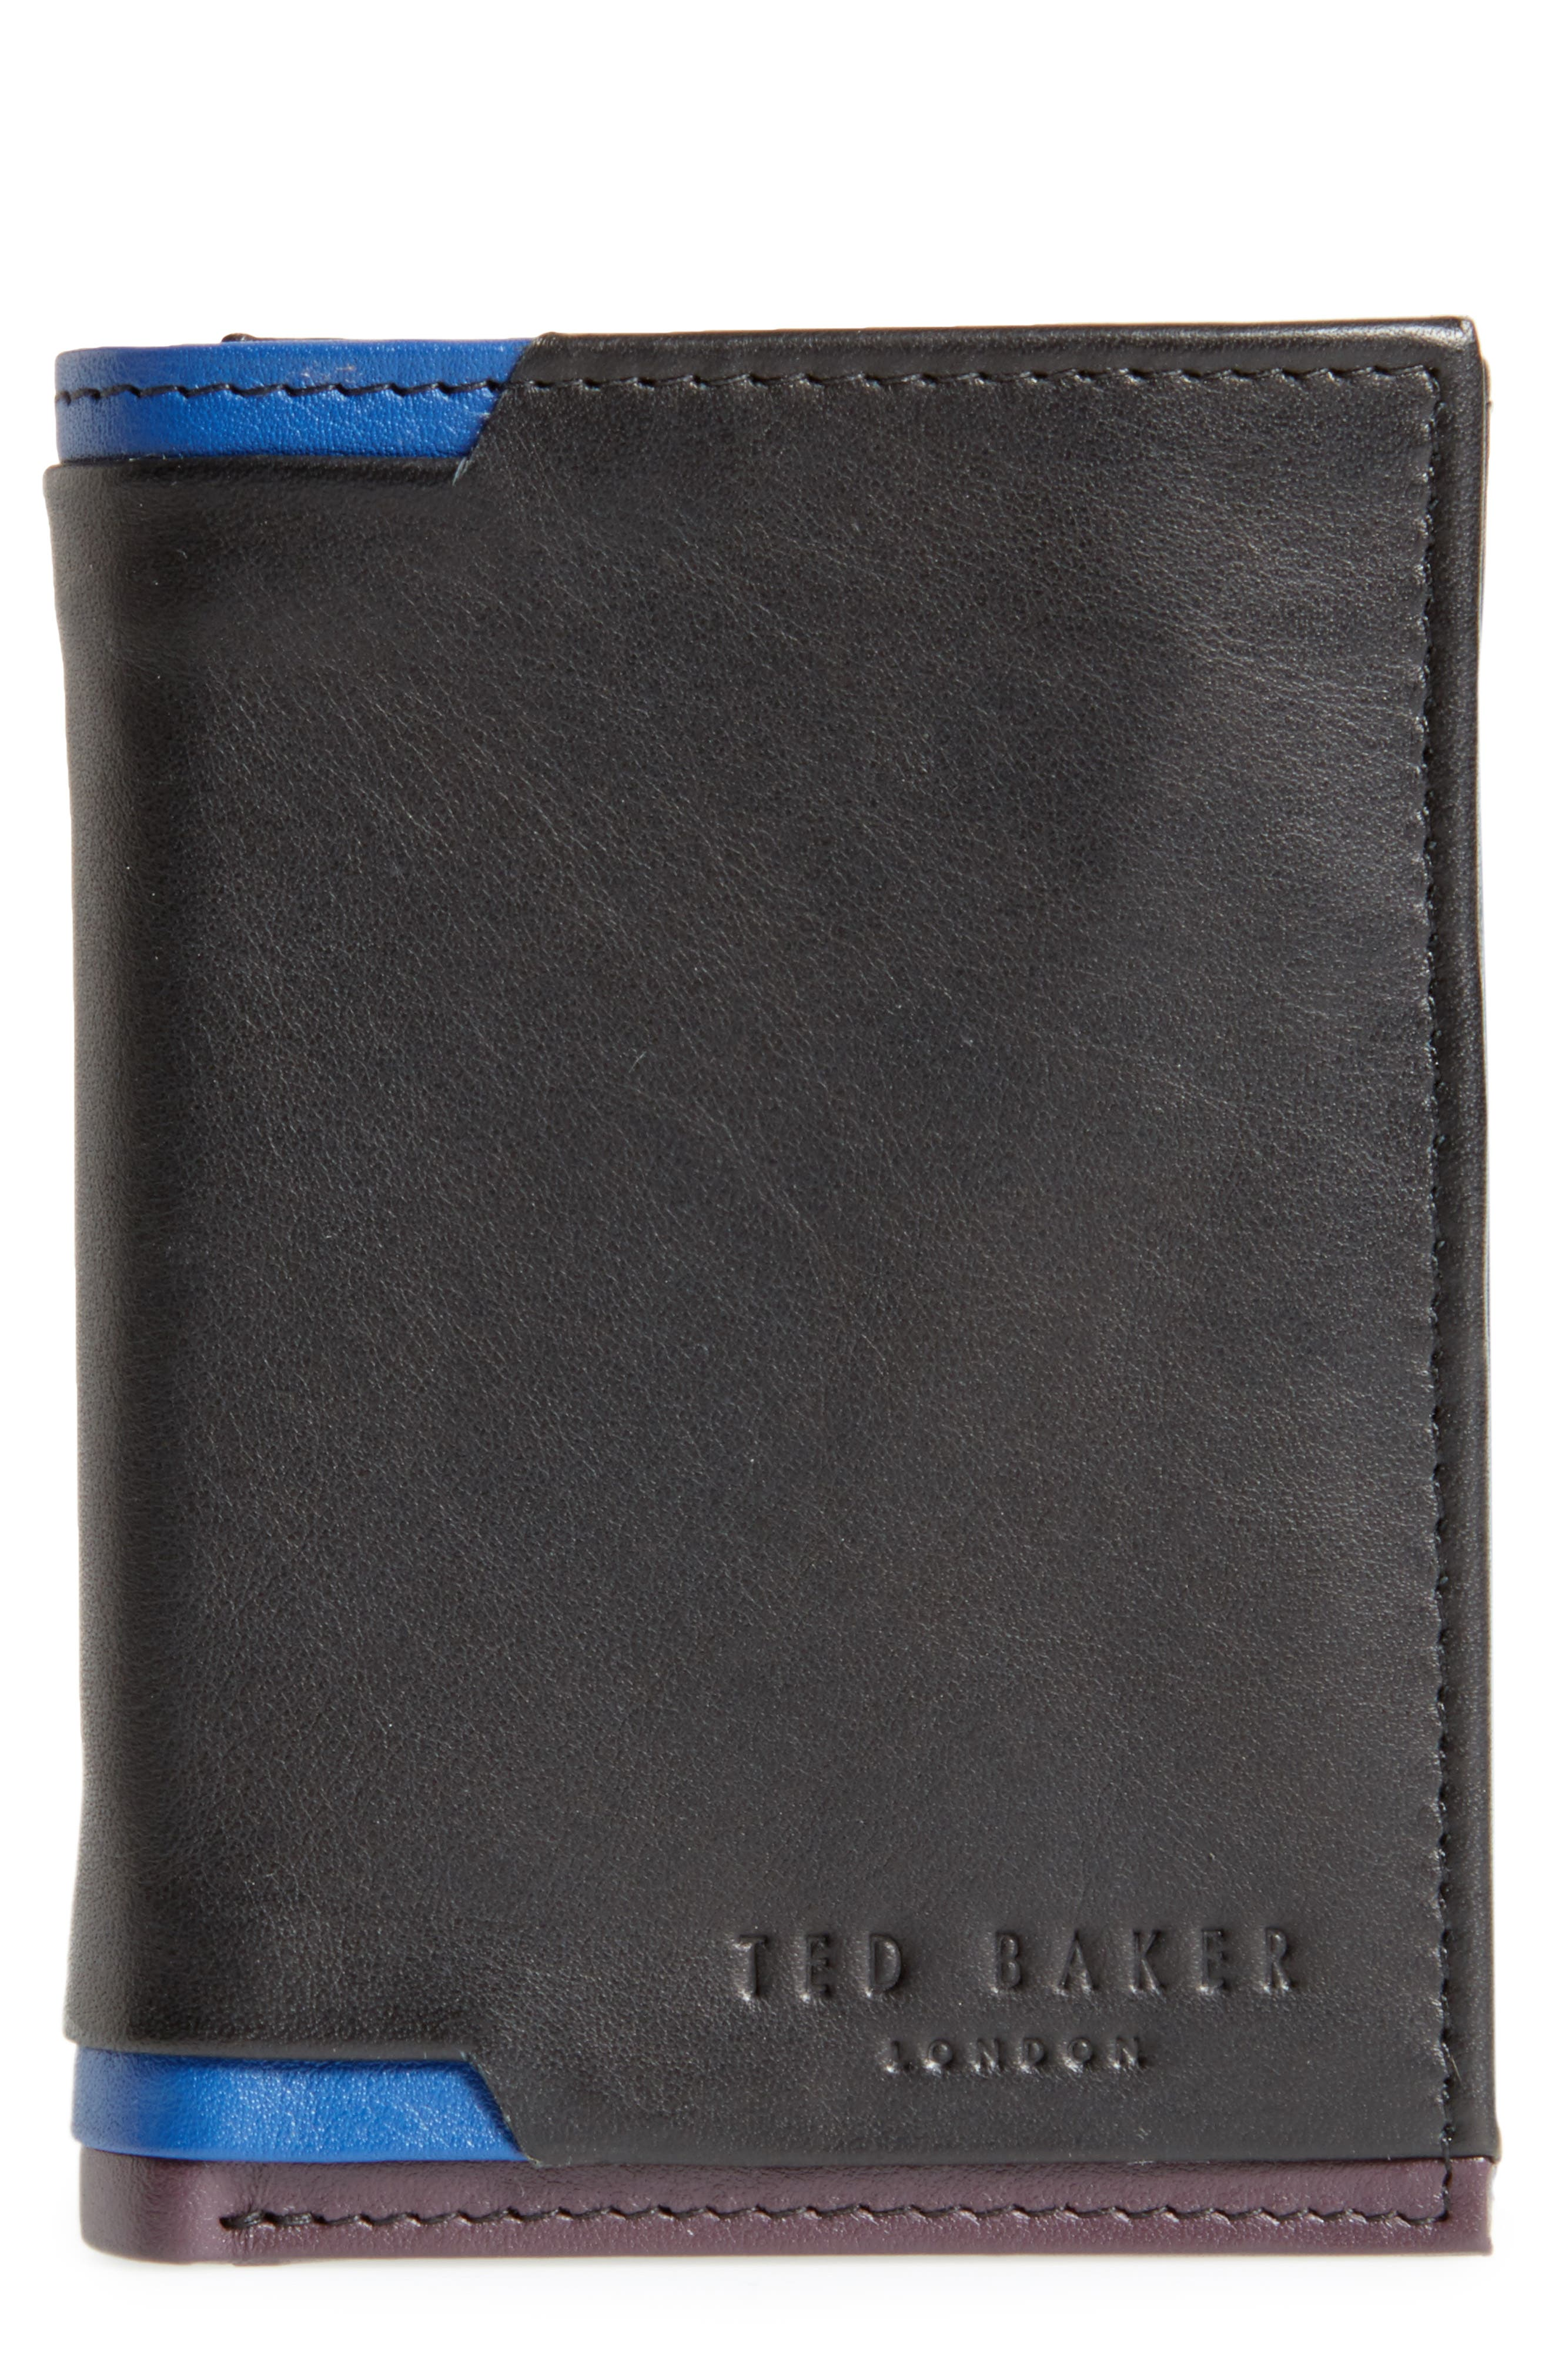 Vien Corner Detail Trifold Leather Wallet,                             Main thumbnail 1, color,                             Black